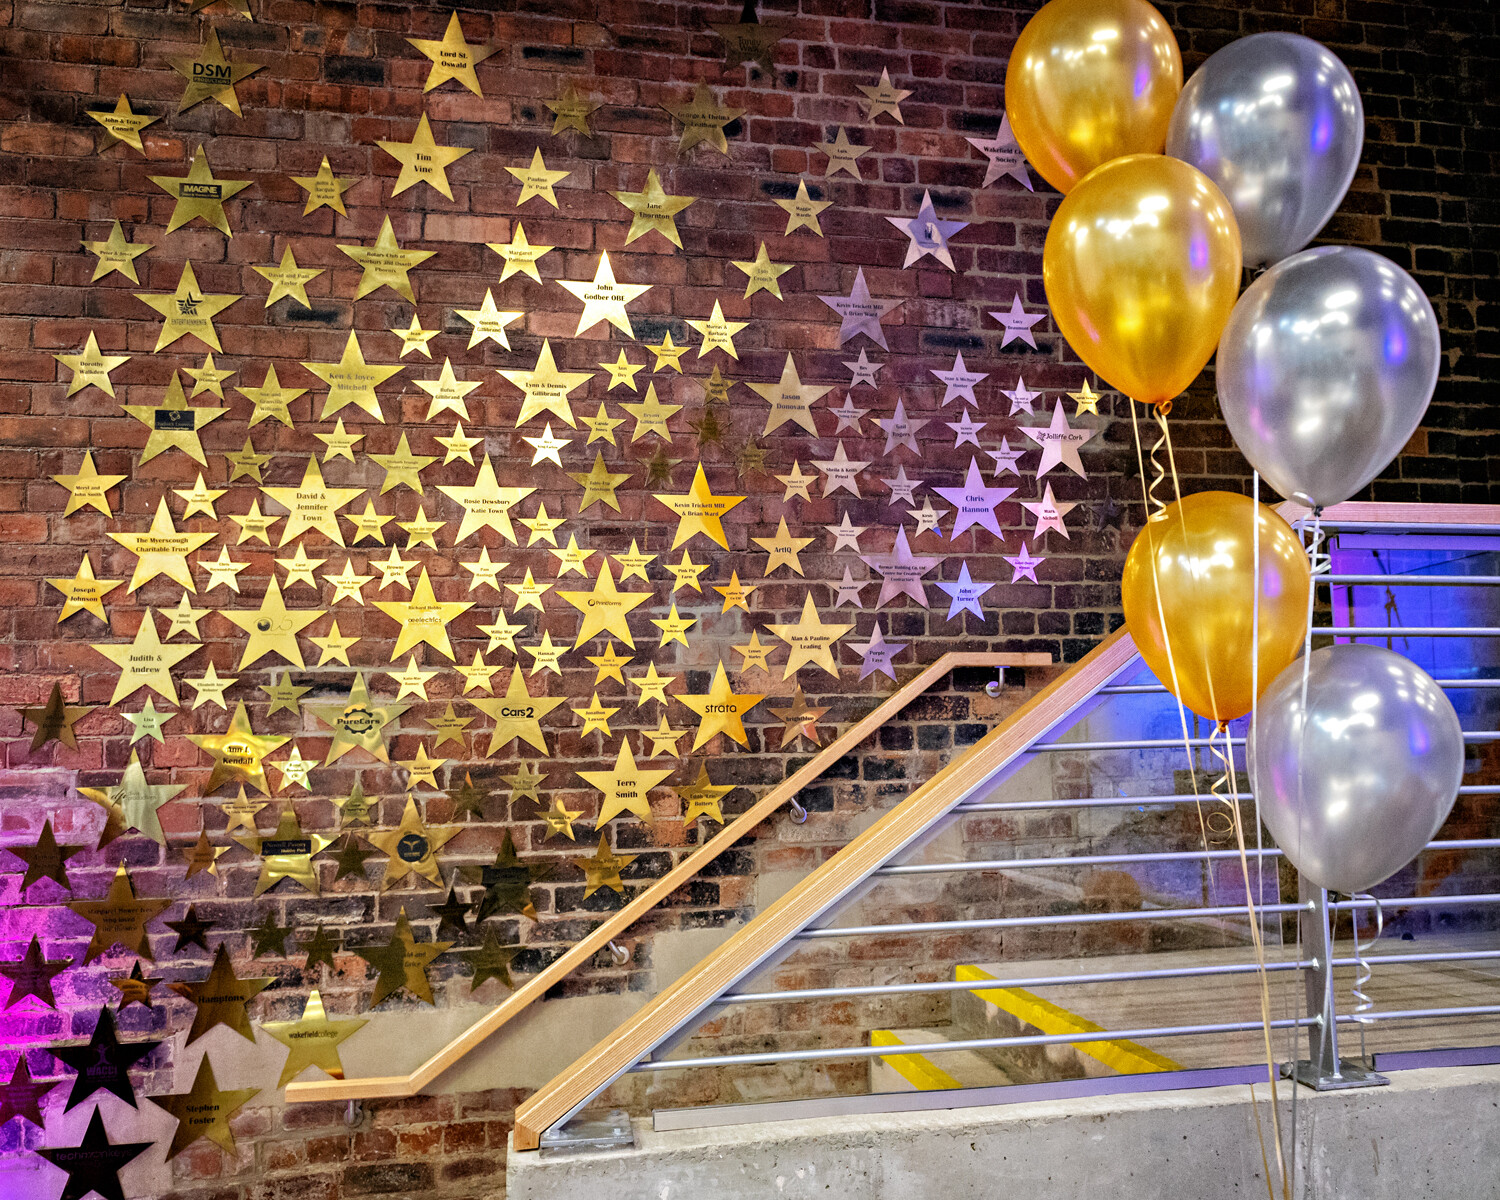 Theatre Royal Wakefield's wall of fame, hundreds of gold metal stars on a brick wall